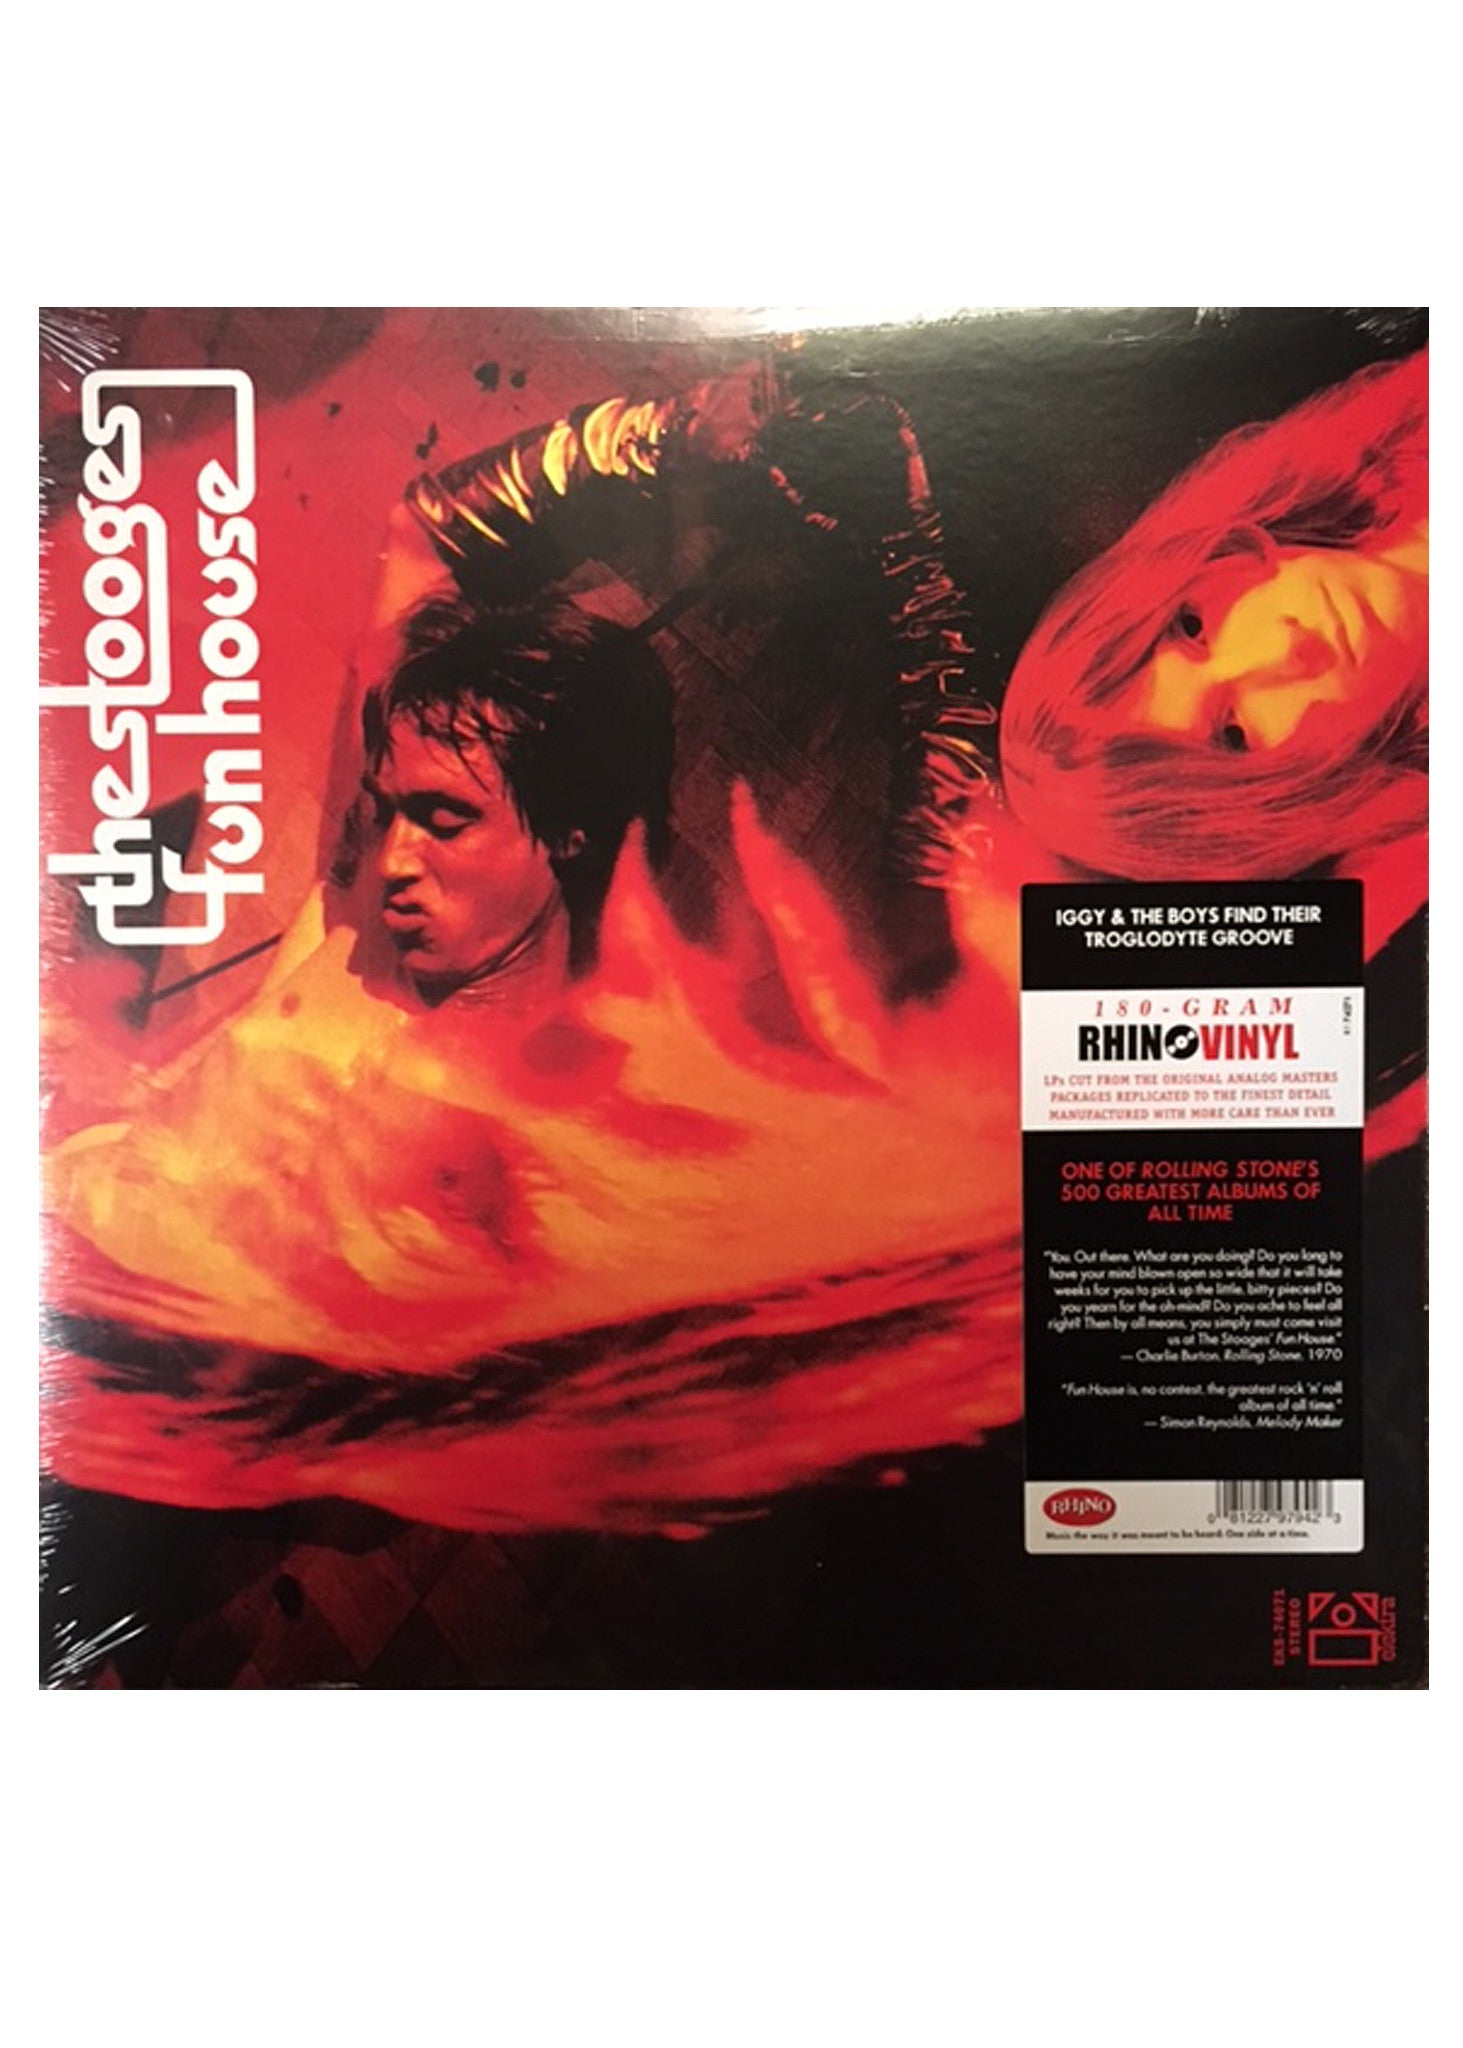 The Stooges - Fun House (LP 12